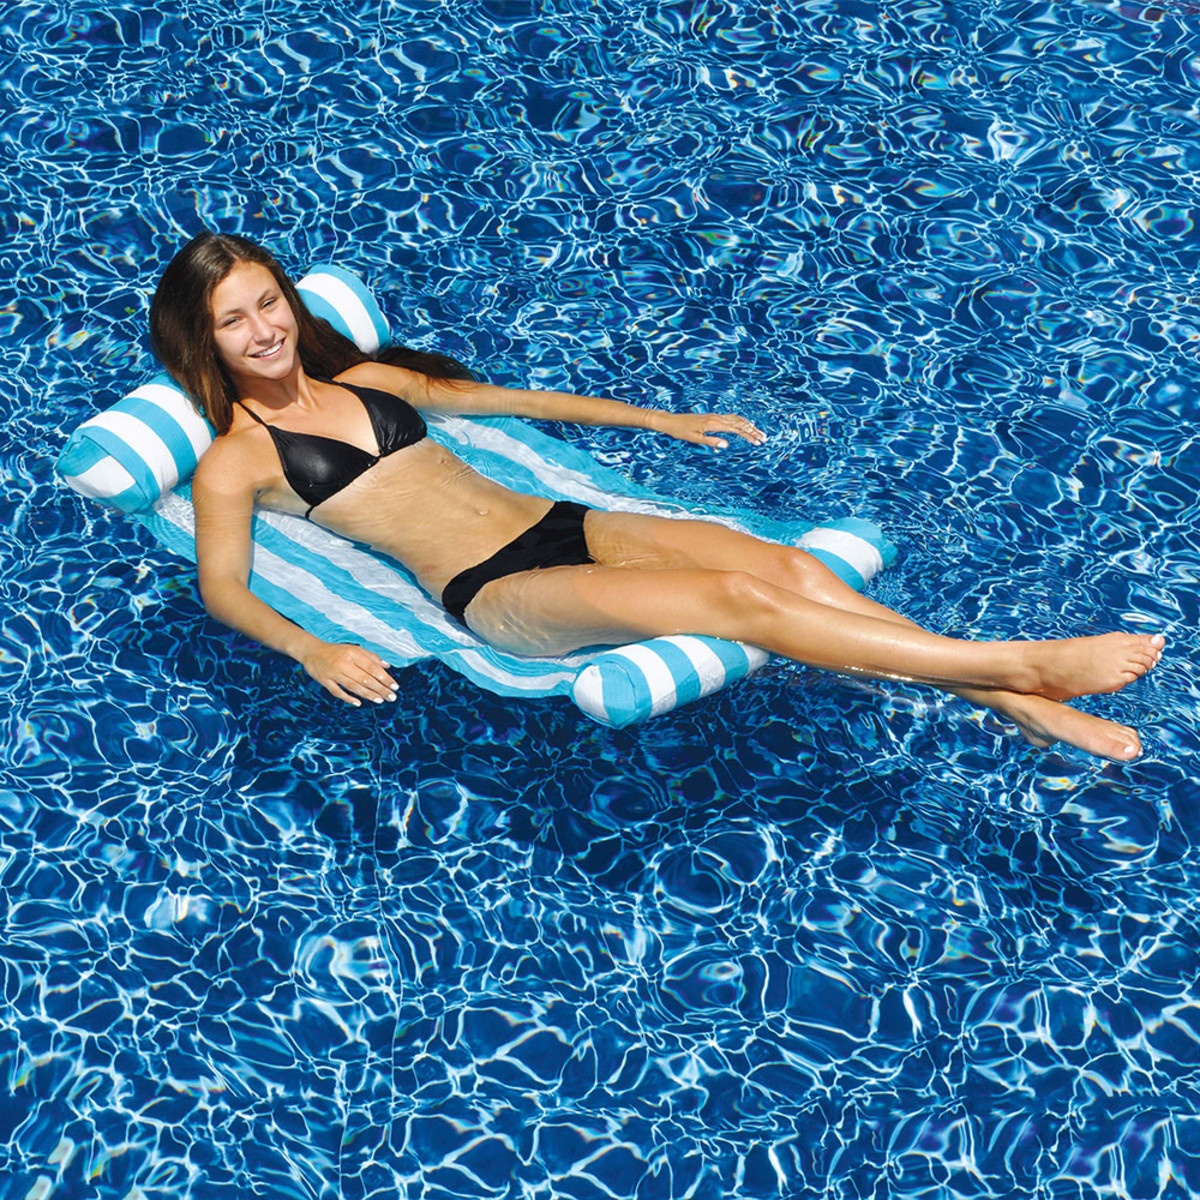 pizza pool water in bed hammock floats lounger chair accessories swimming item air sports from float mattress rings sleeping inflatable